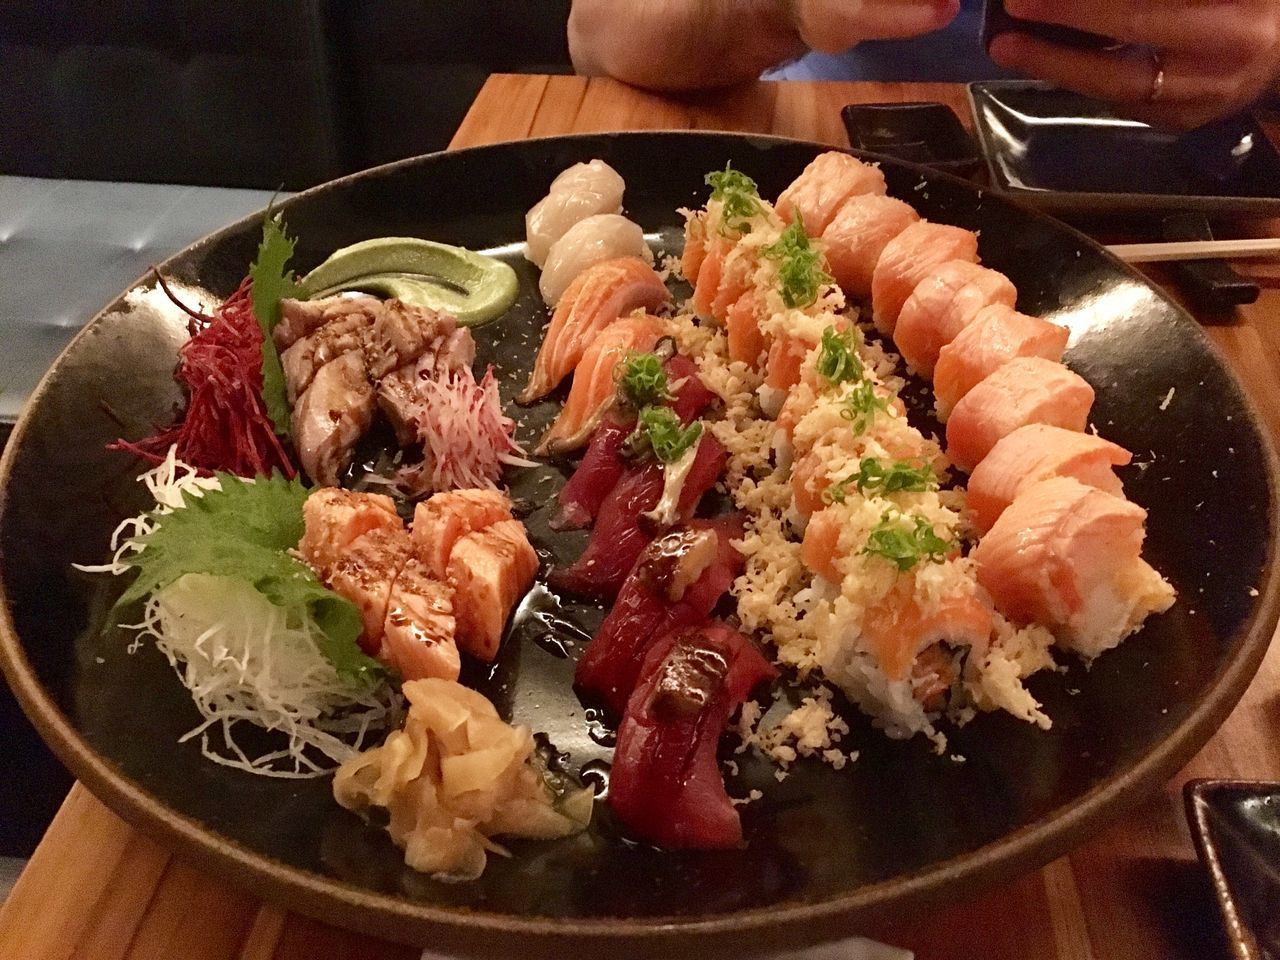 food and drink, food, freshness, ready-to-eat, healthy eating, indoors, wellbeing, meat, close-up, table, serving size, seafood, plate, meal, asian food, high angle view, still life, vegetable, japanese food, indulgence